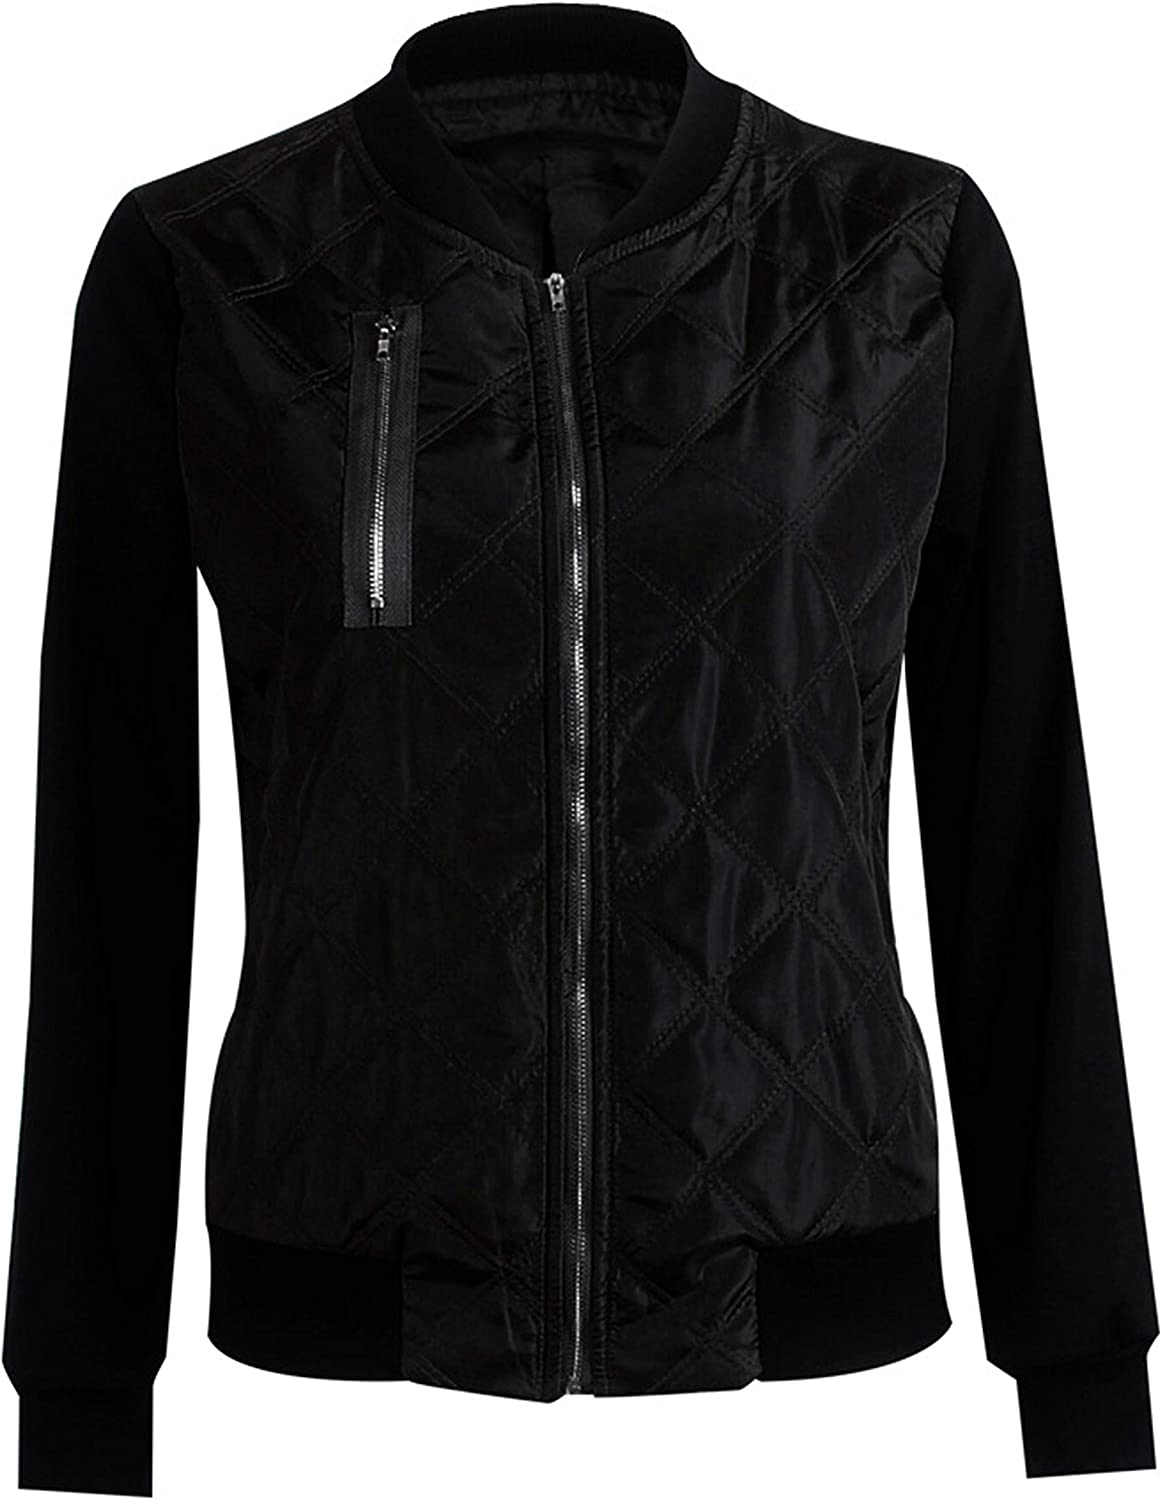 Sales Yeokou Women's Zip Up Splicing Collar Bombe Casual Quilted Round Fresno Mall